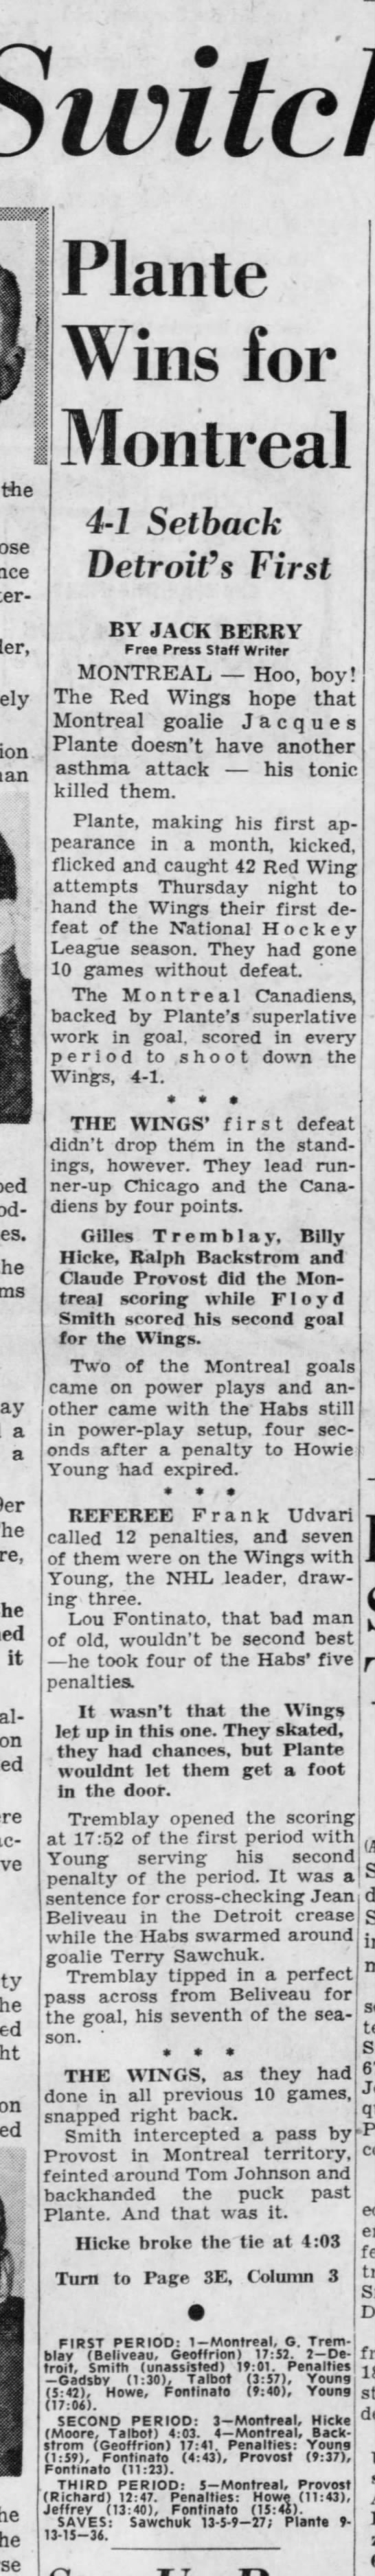 What a Switch! Wings Beaten . . . Plante Wins for Montreal -